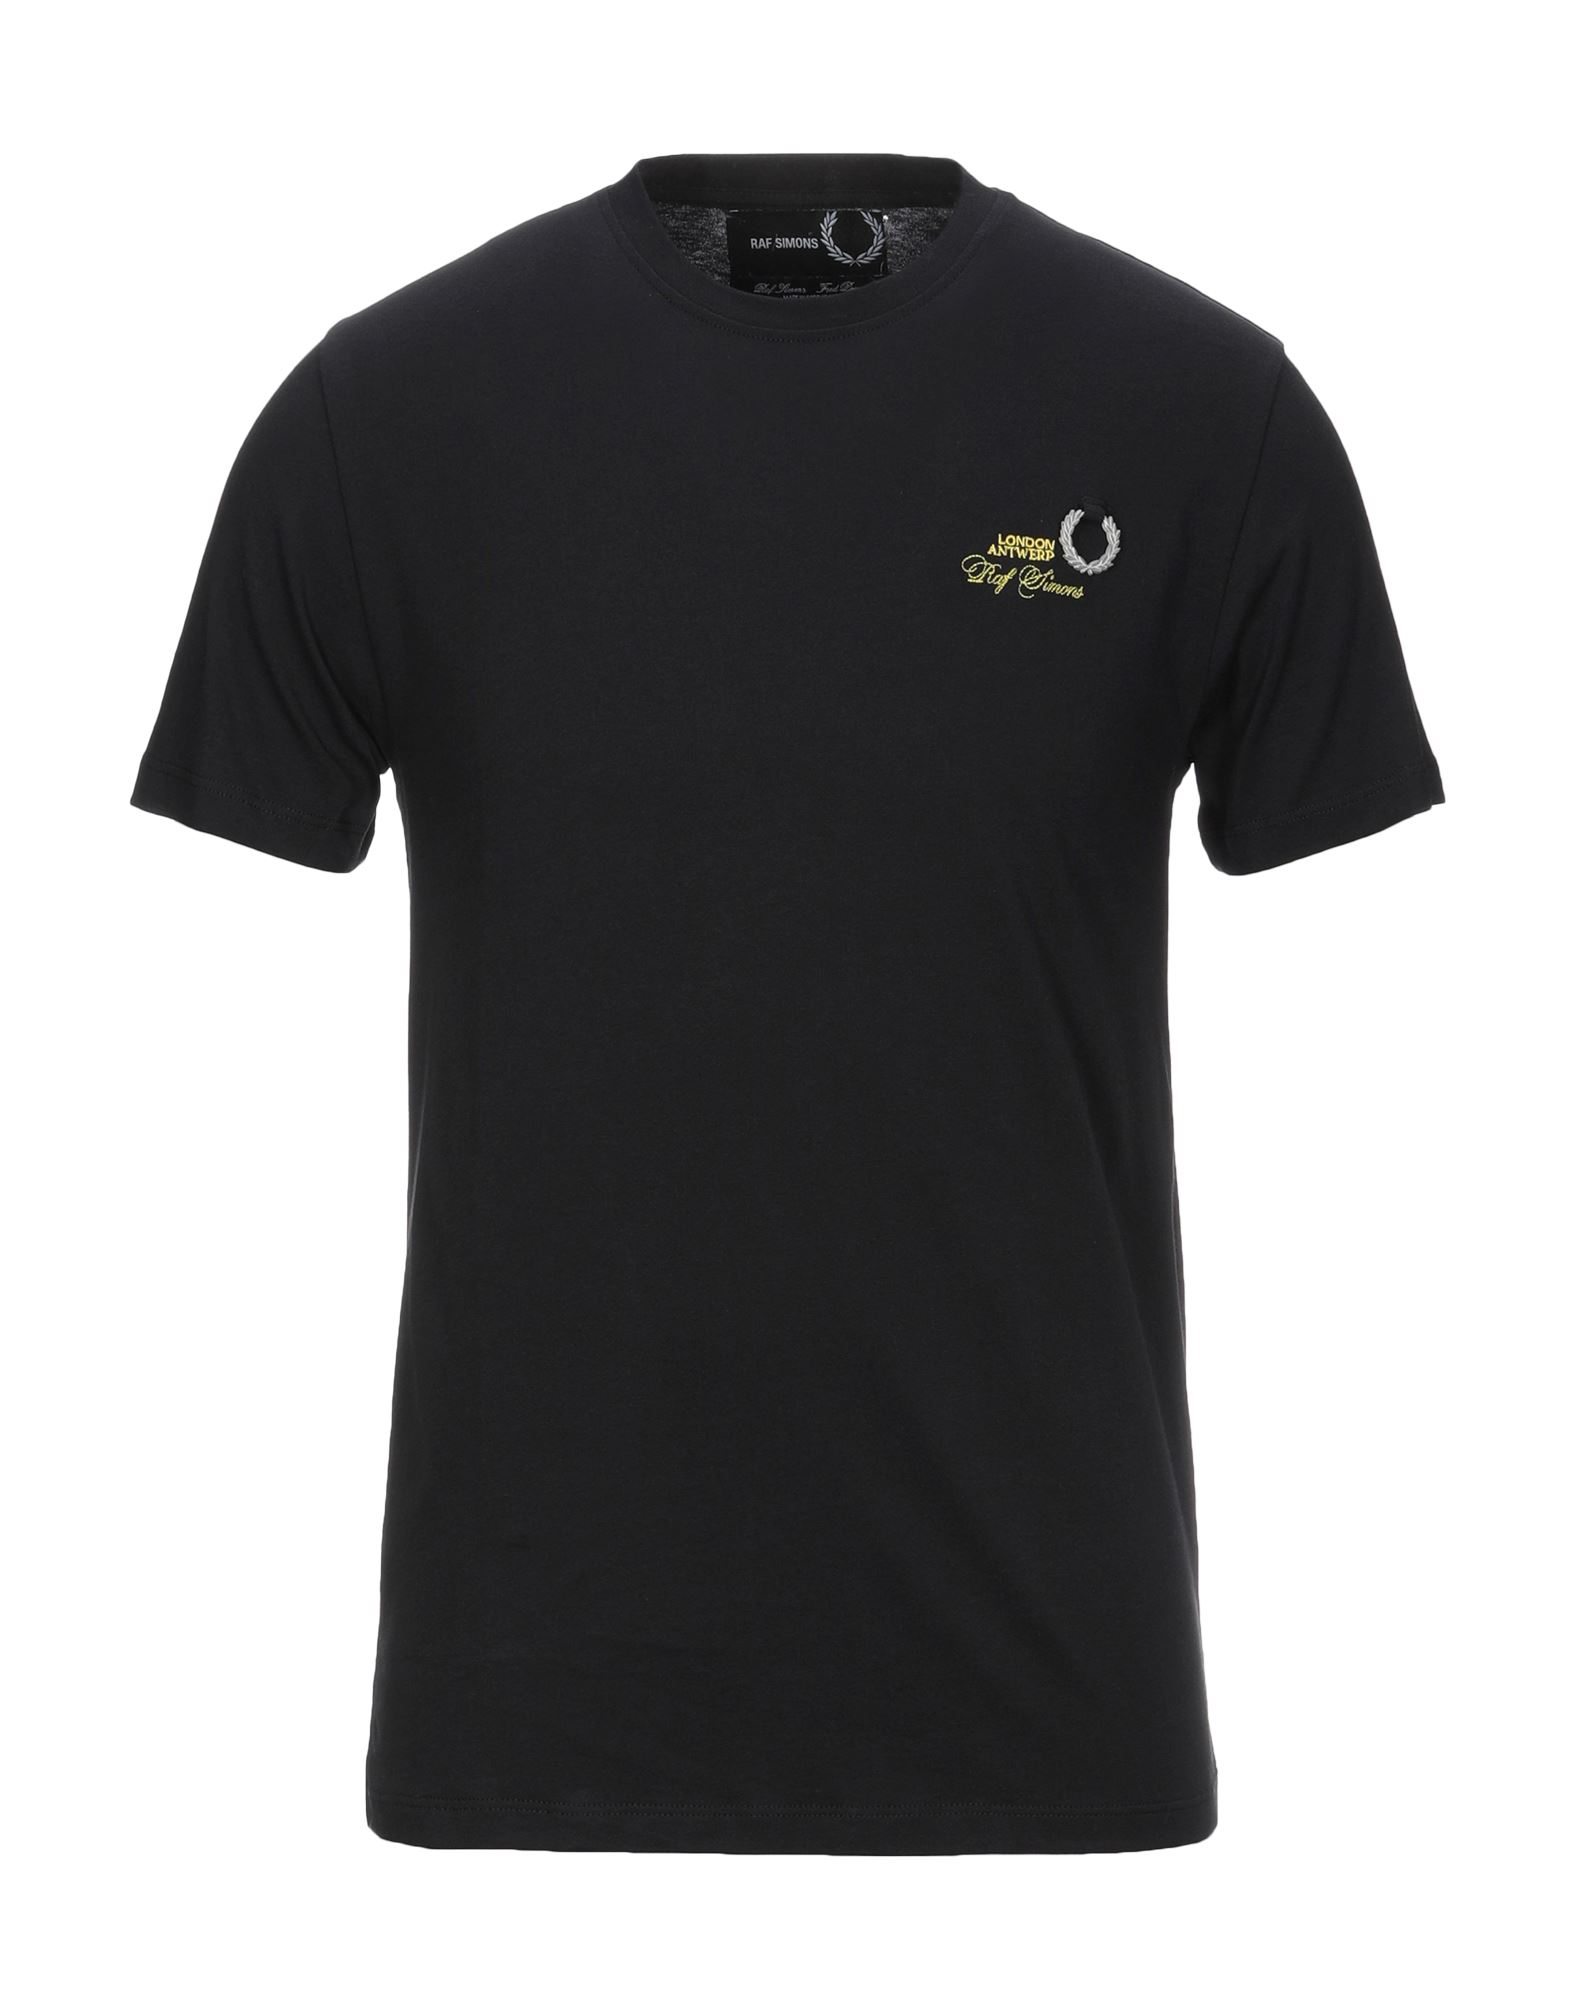 RAF SIMONS FRED PERRY Футболка fred perry футболка